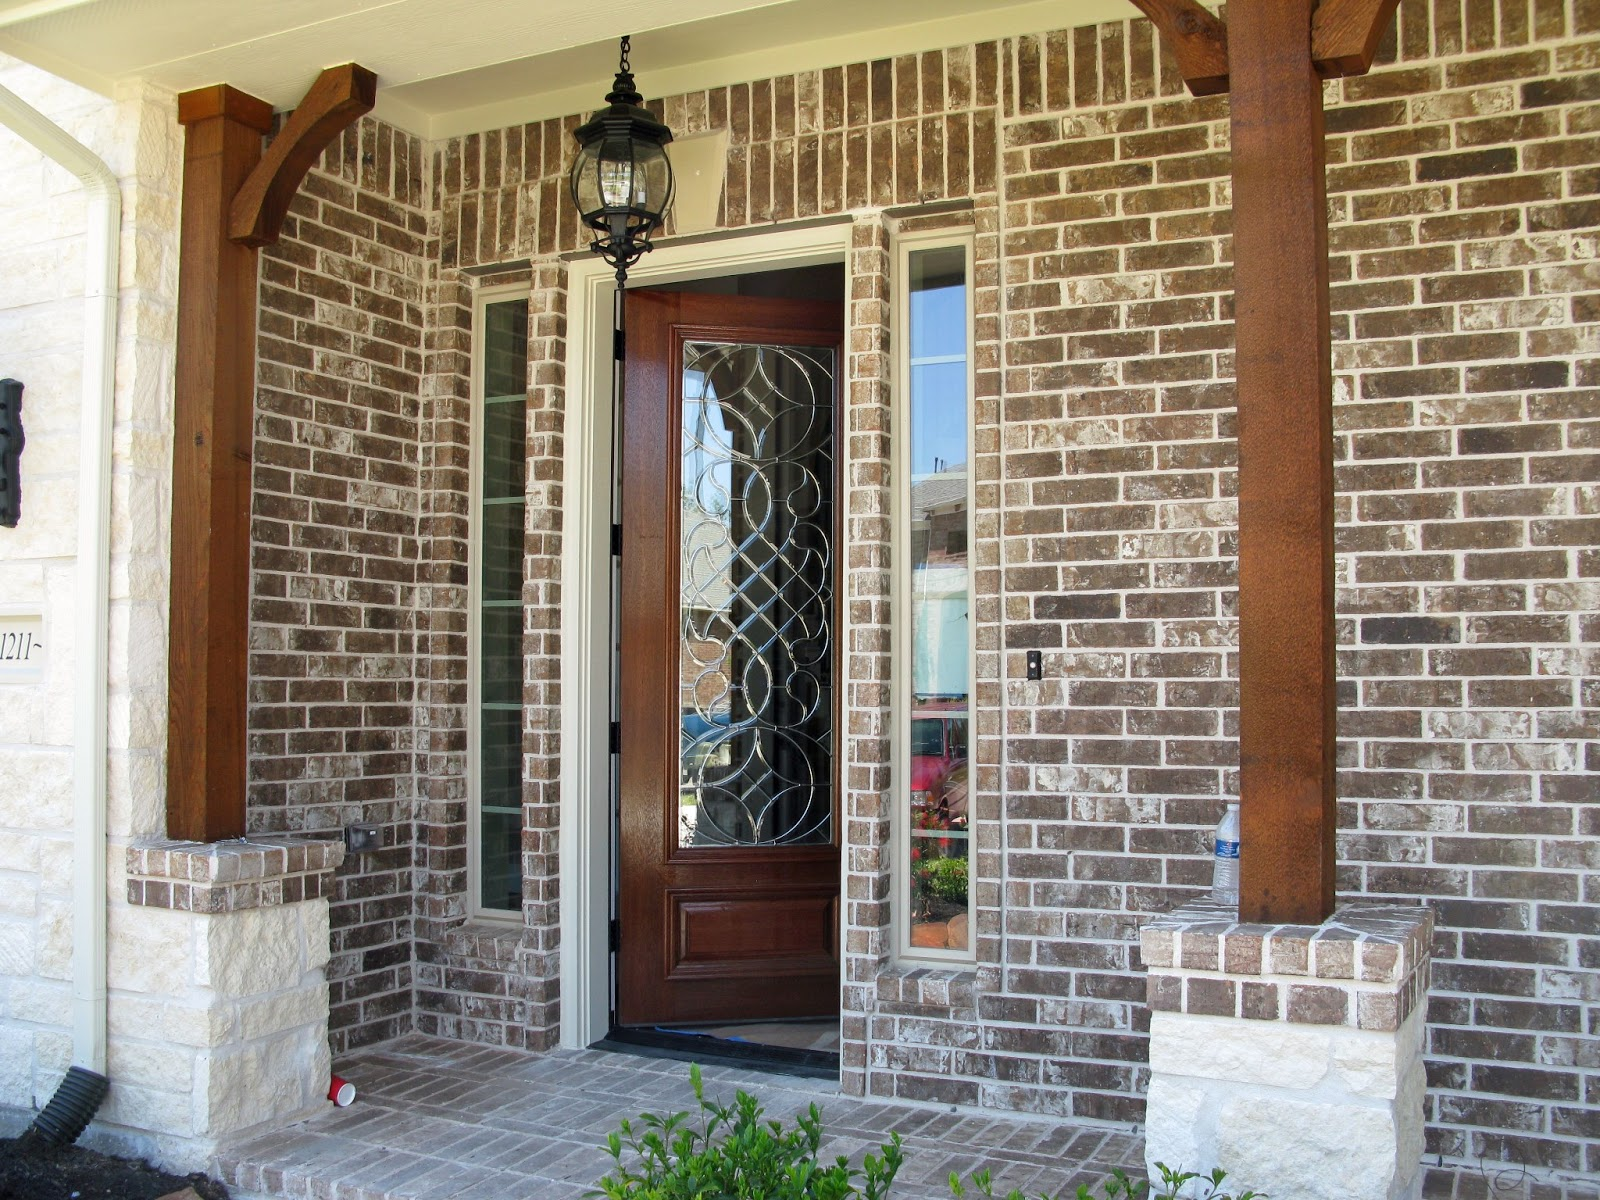 Brick stone wall 0064 likewise Colors Of Vinyl Siding also ZGFyayBncmF5IHZpbnlsIHNpZGluZw in addition Vinyl Siding Long Island additionally Immagini Esterno Case Rustiche Bellissime. on red brick and stone combinations